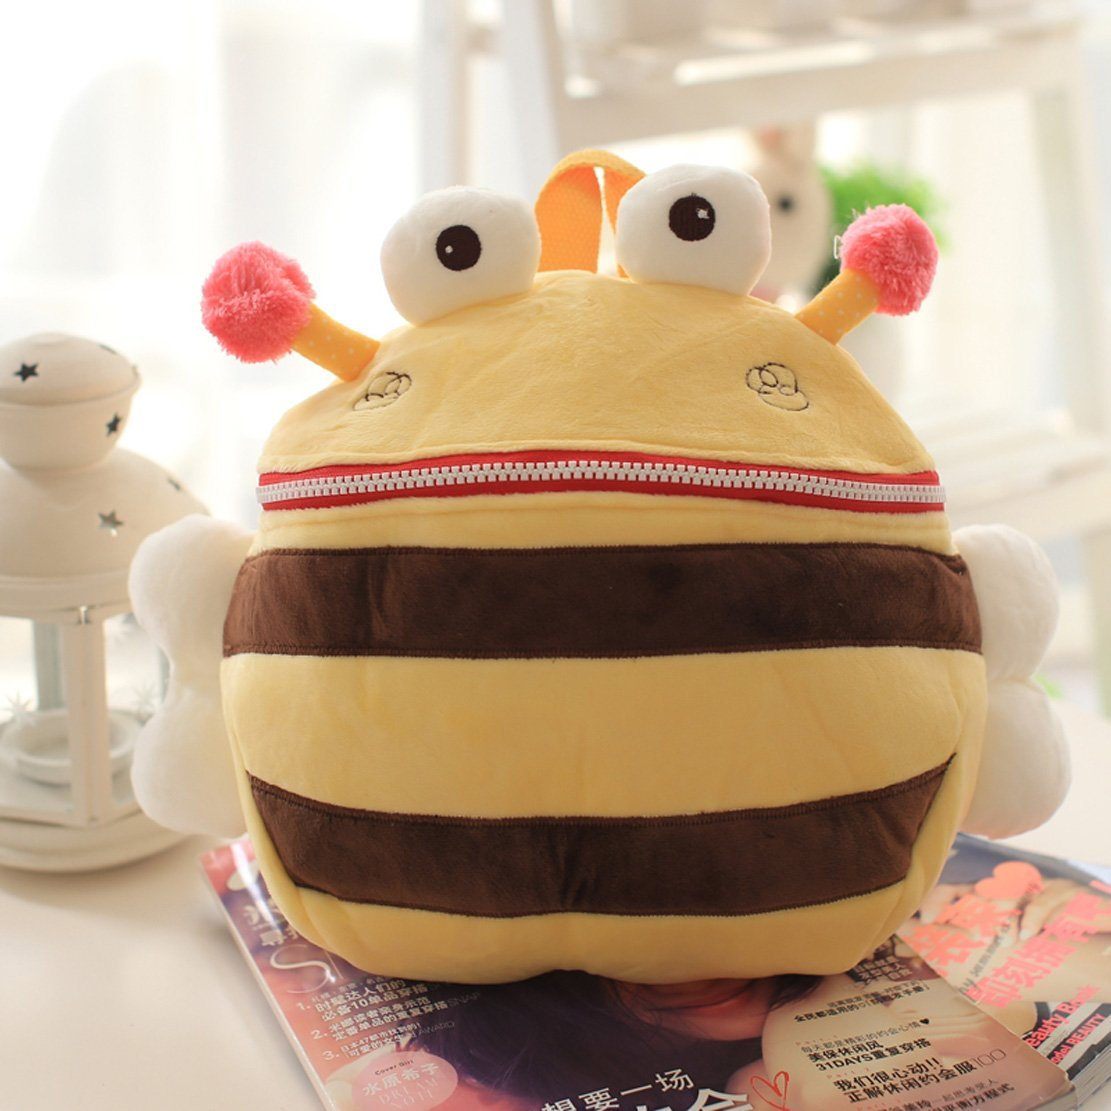 HIGOGOGO New!Cute Fish Beetle Frog Bee Crab Pattern Plush Kindergarten Schoolbag,Kids Snack Bag, Kids Cartoon Backpack Satchel School Bag (Bee)